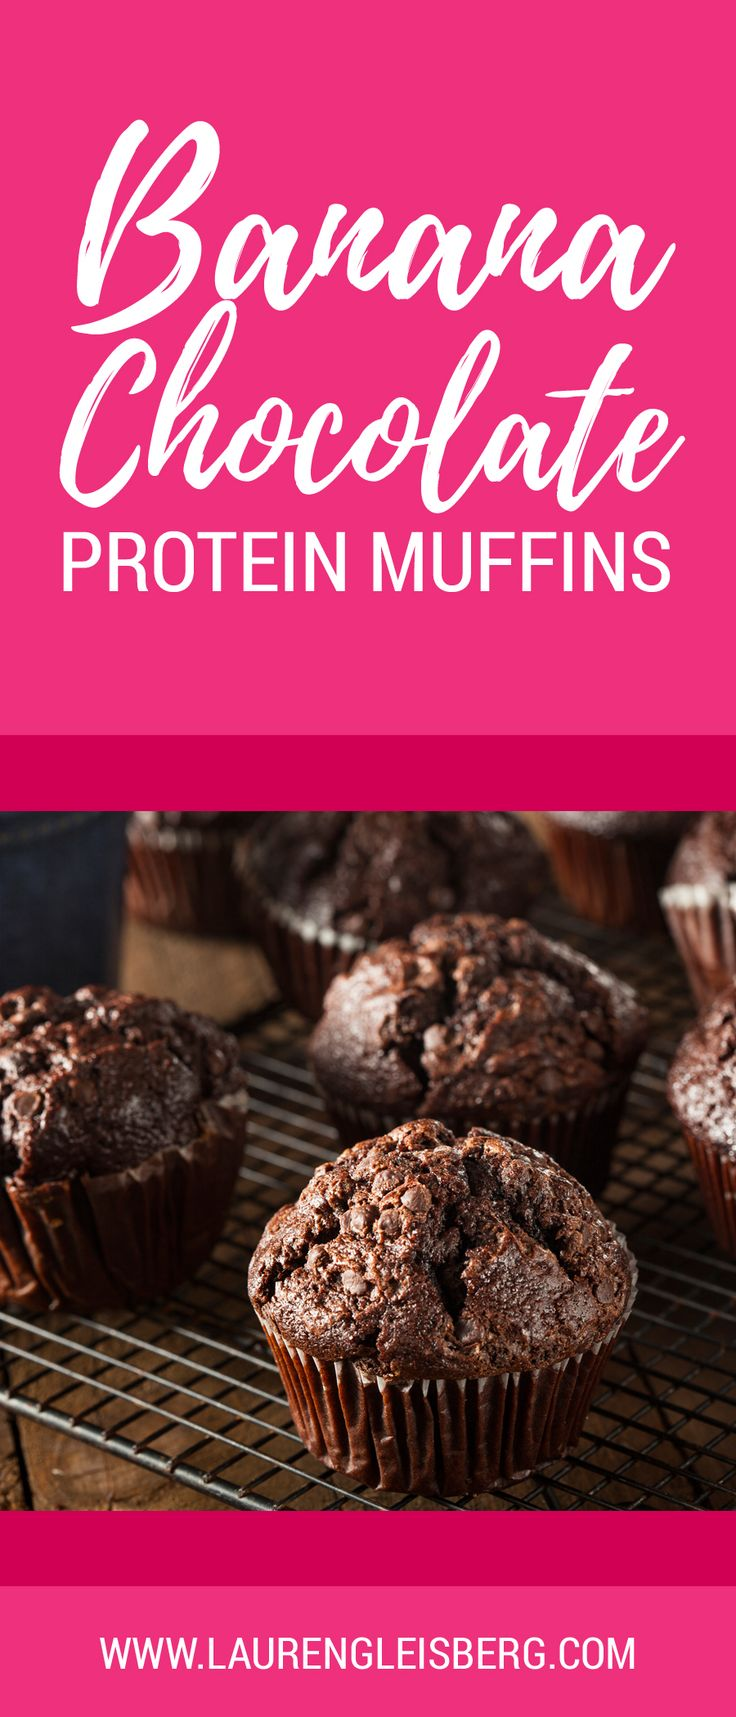 CHOCOLATE PROTEIN MUFFINS RECIPE – Lauren Gleisberg